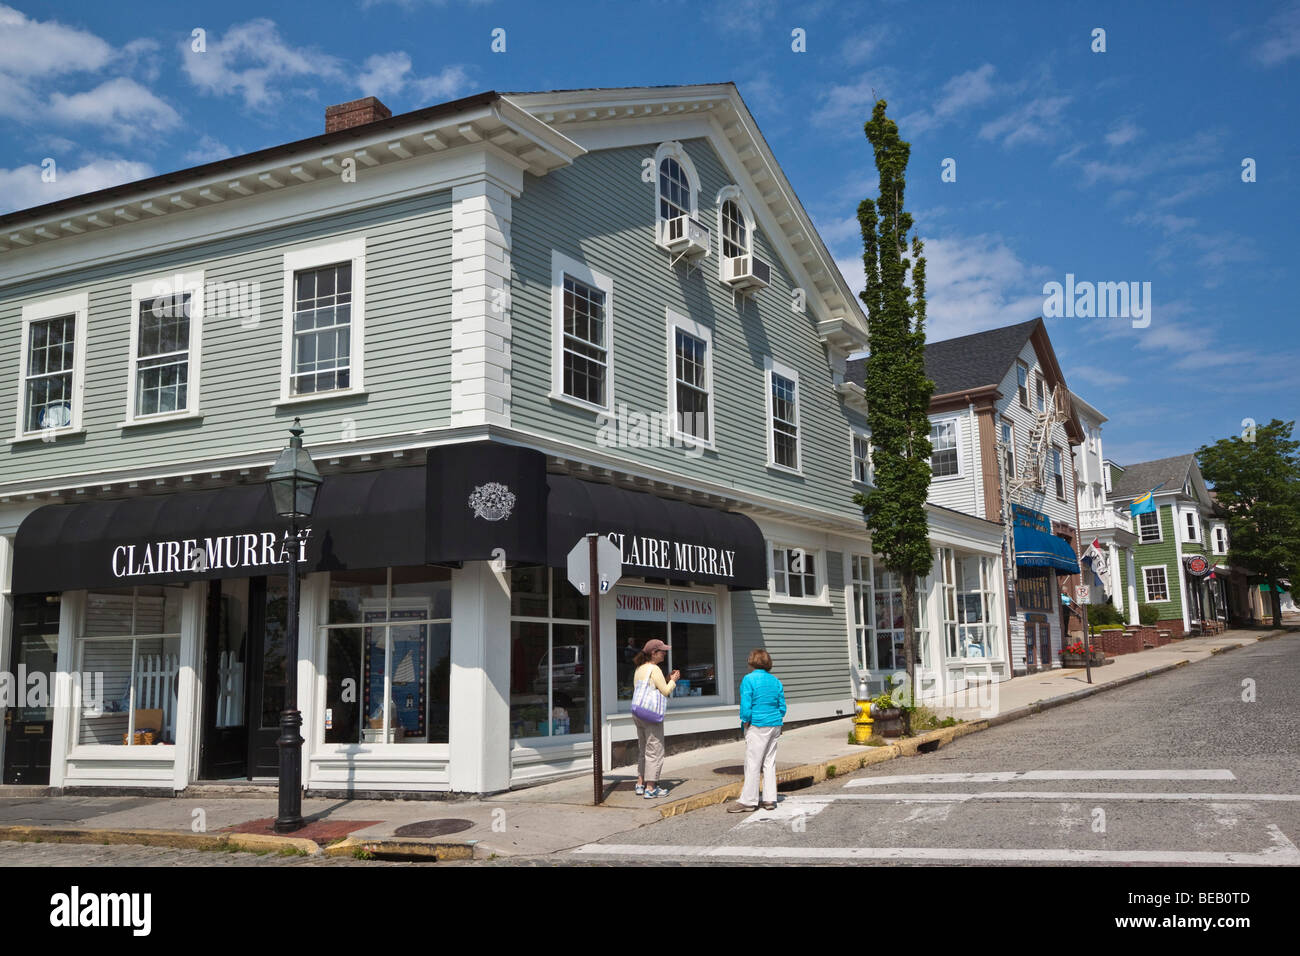 A Claire Murray Rug, Furniture And Accessory Store On Popular Thames Street  In Historic Newport, Rhode Island, New England, USA